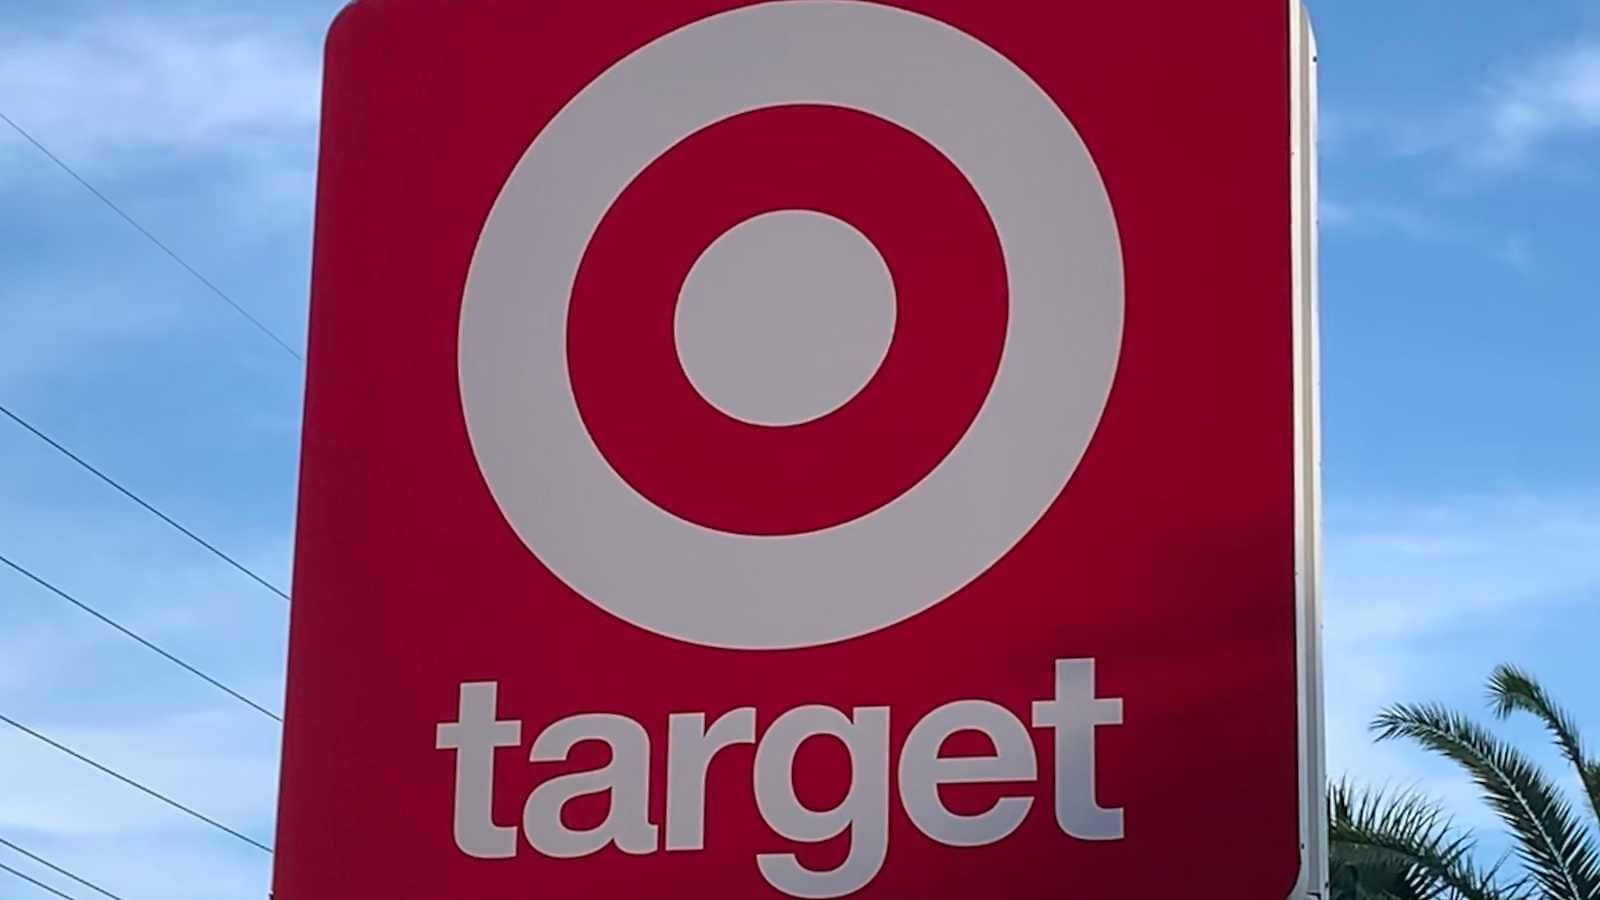 What Stores Are Closed Thanksgiving 2020? Target, Walmart, Kohl's Among Major Retailers Closed Amid Coronavirus